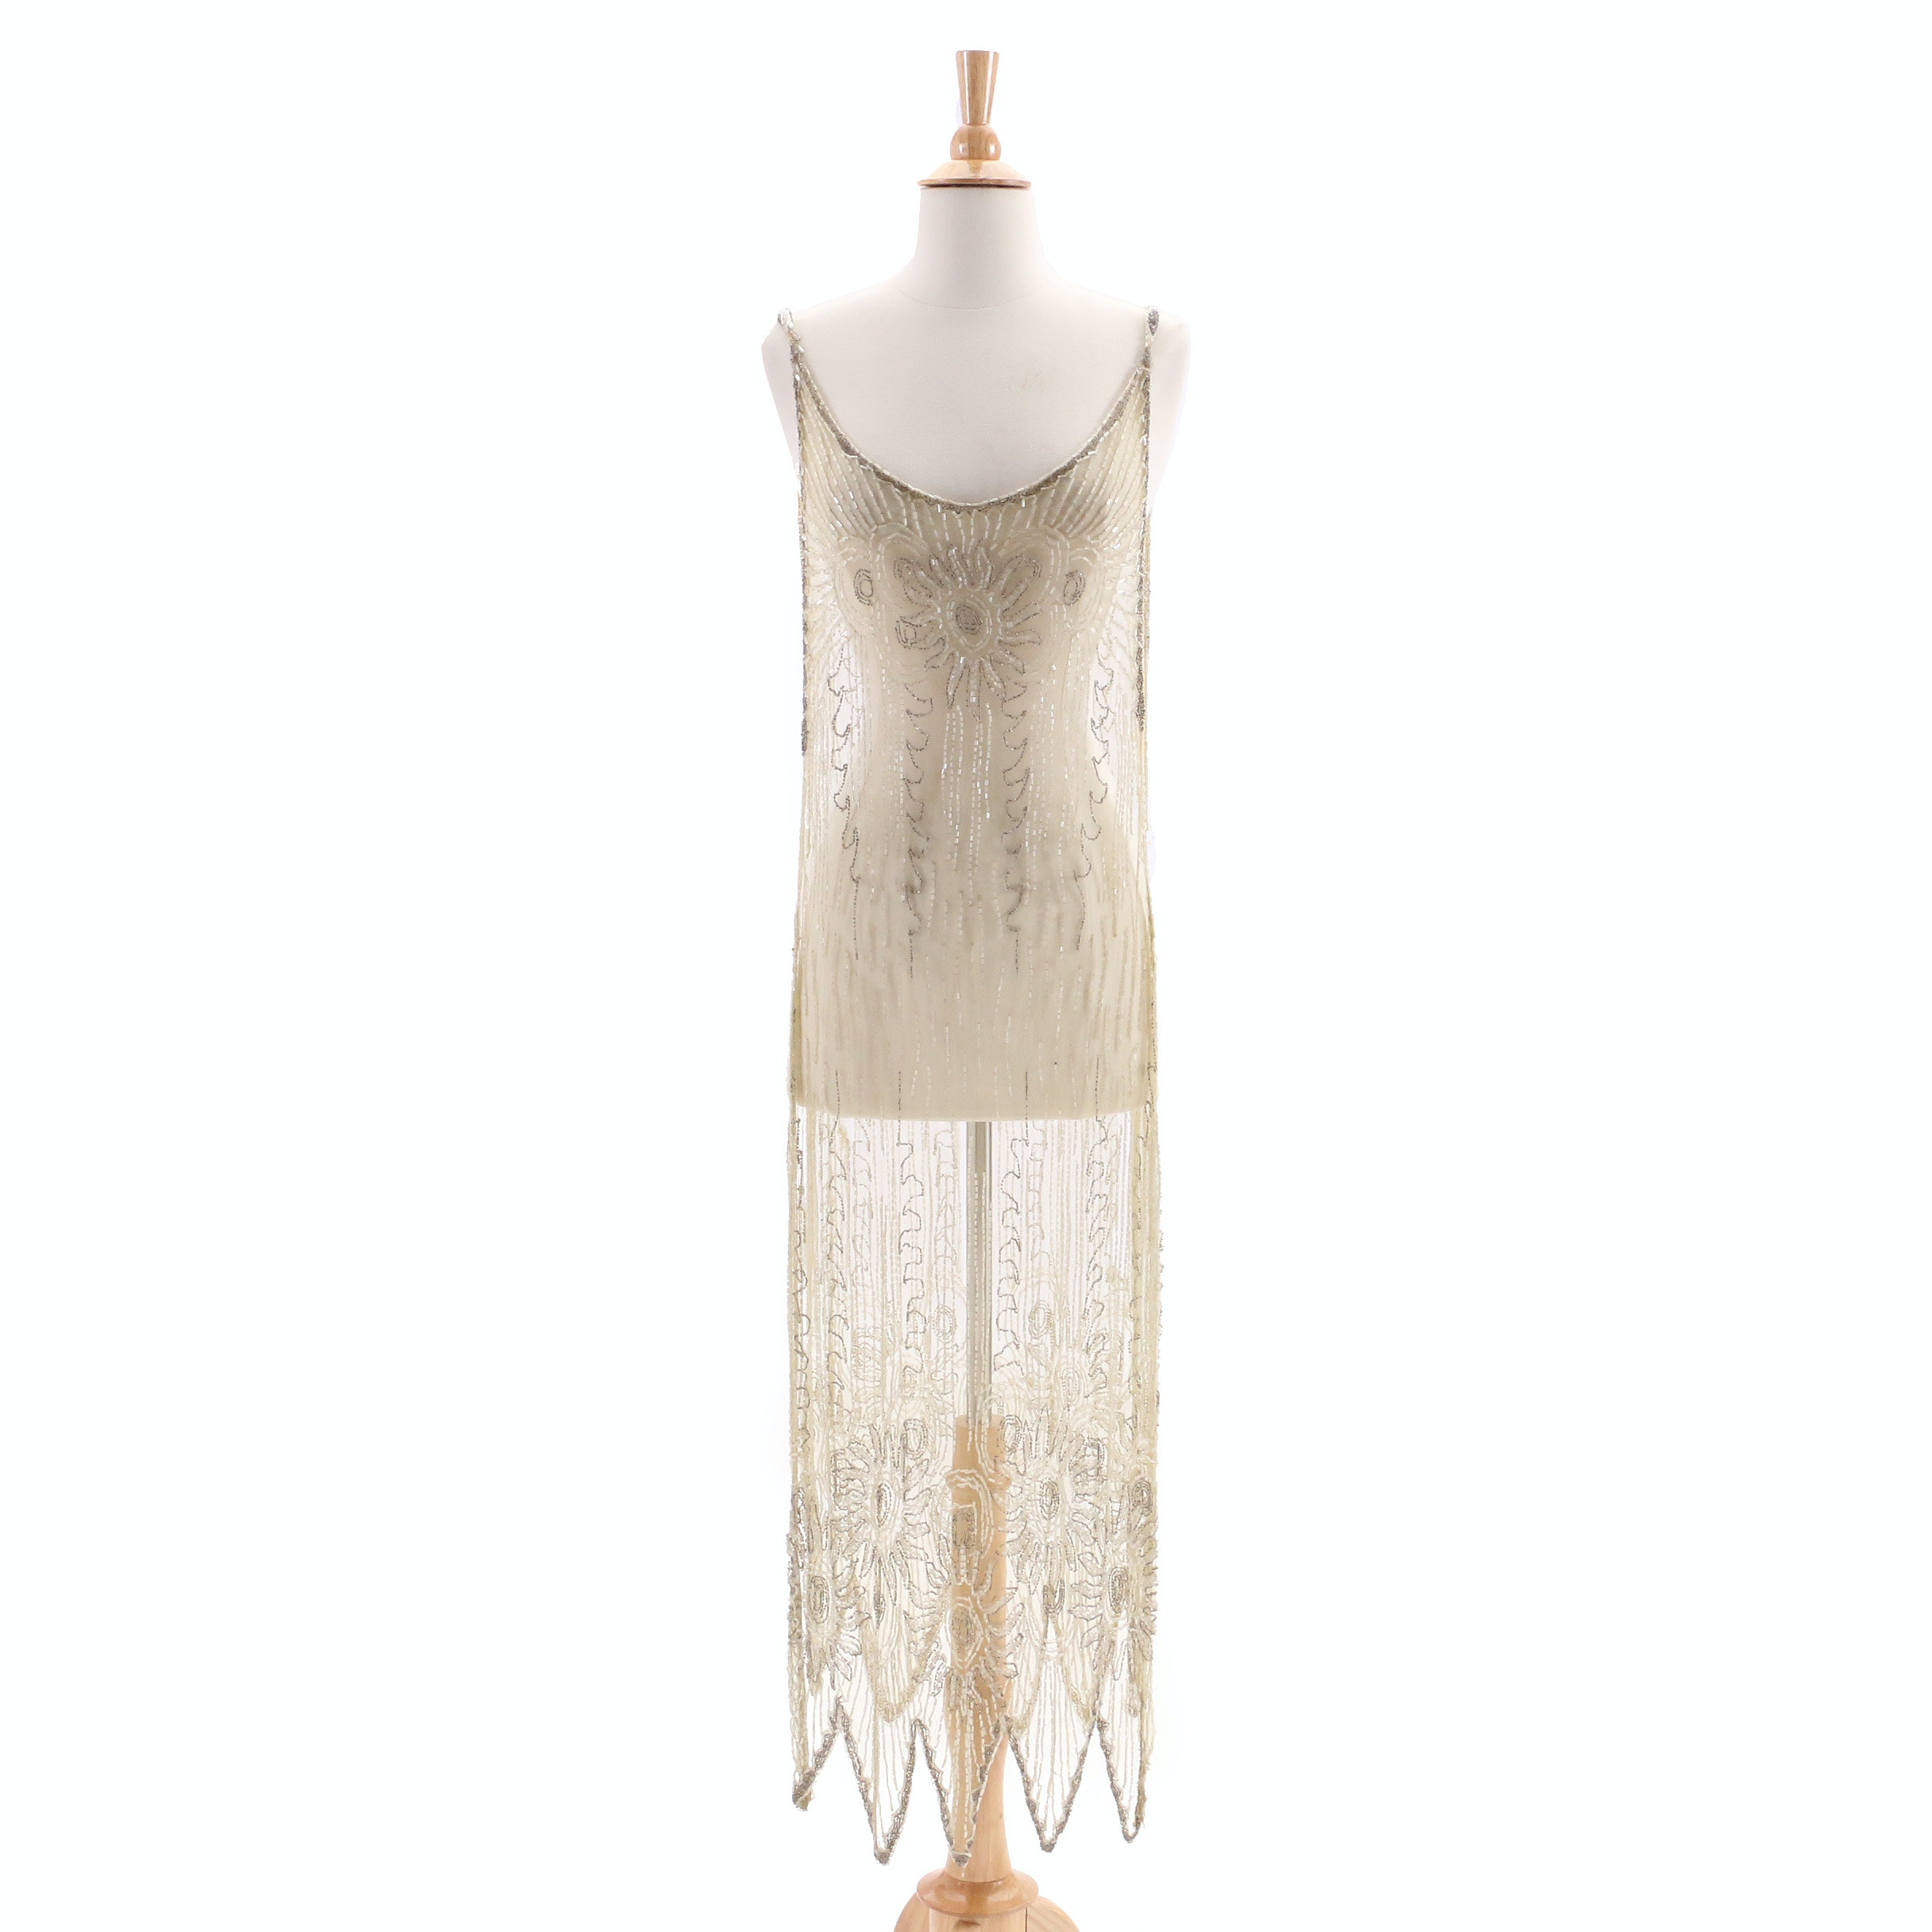 1920s Vintage Sheer Beaded Tabard Over Dress